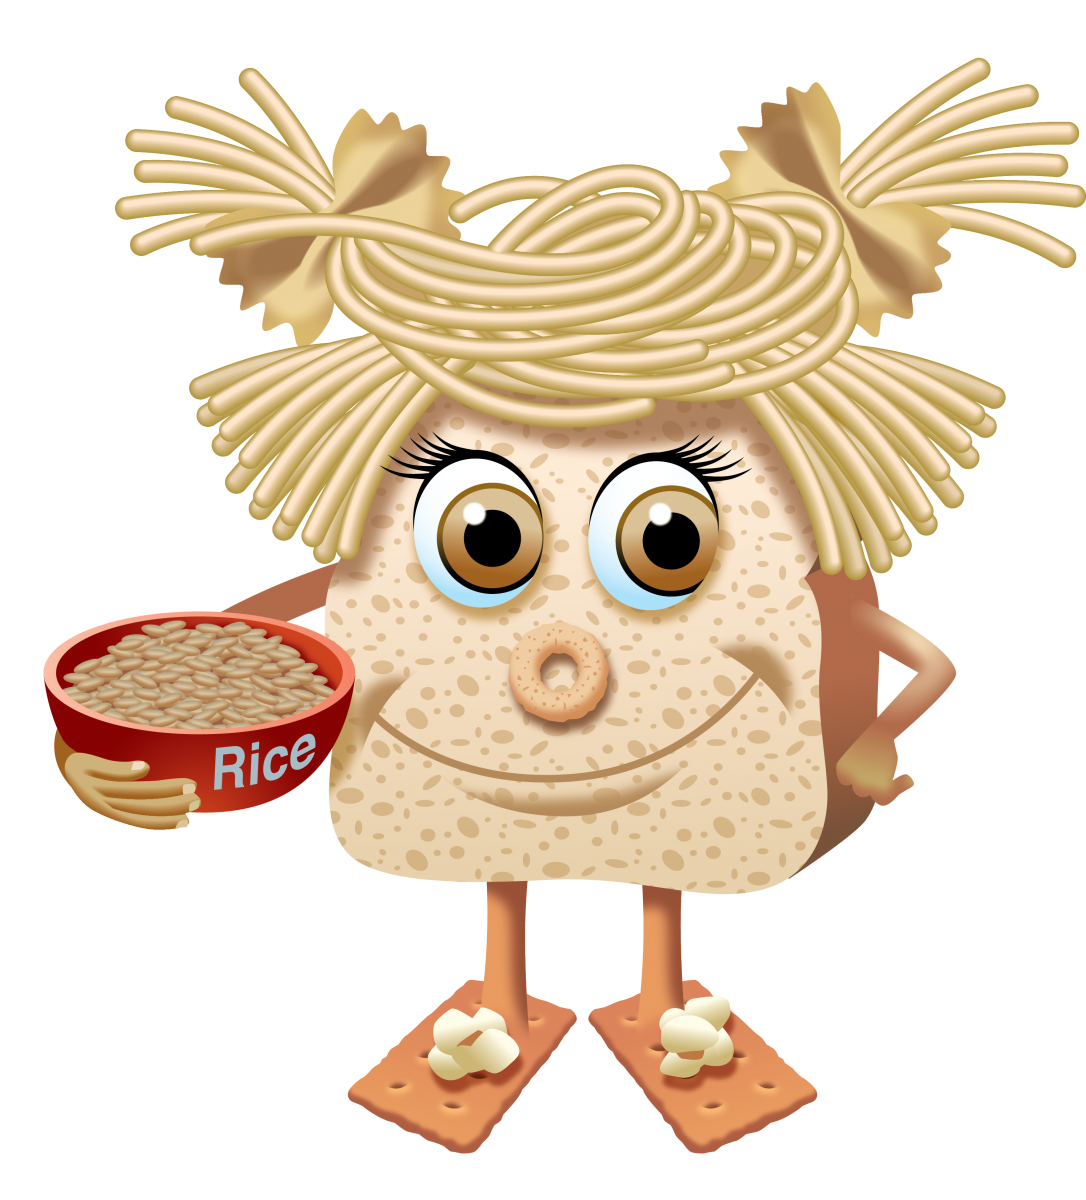 png freeuse download Grains clipart grain food group. Whole month healthy meals